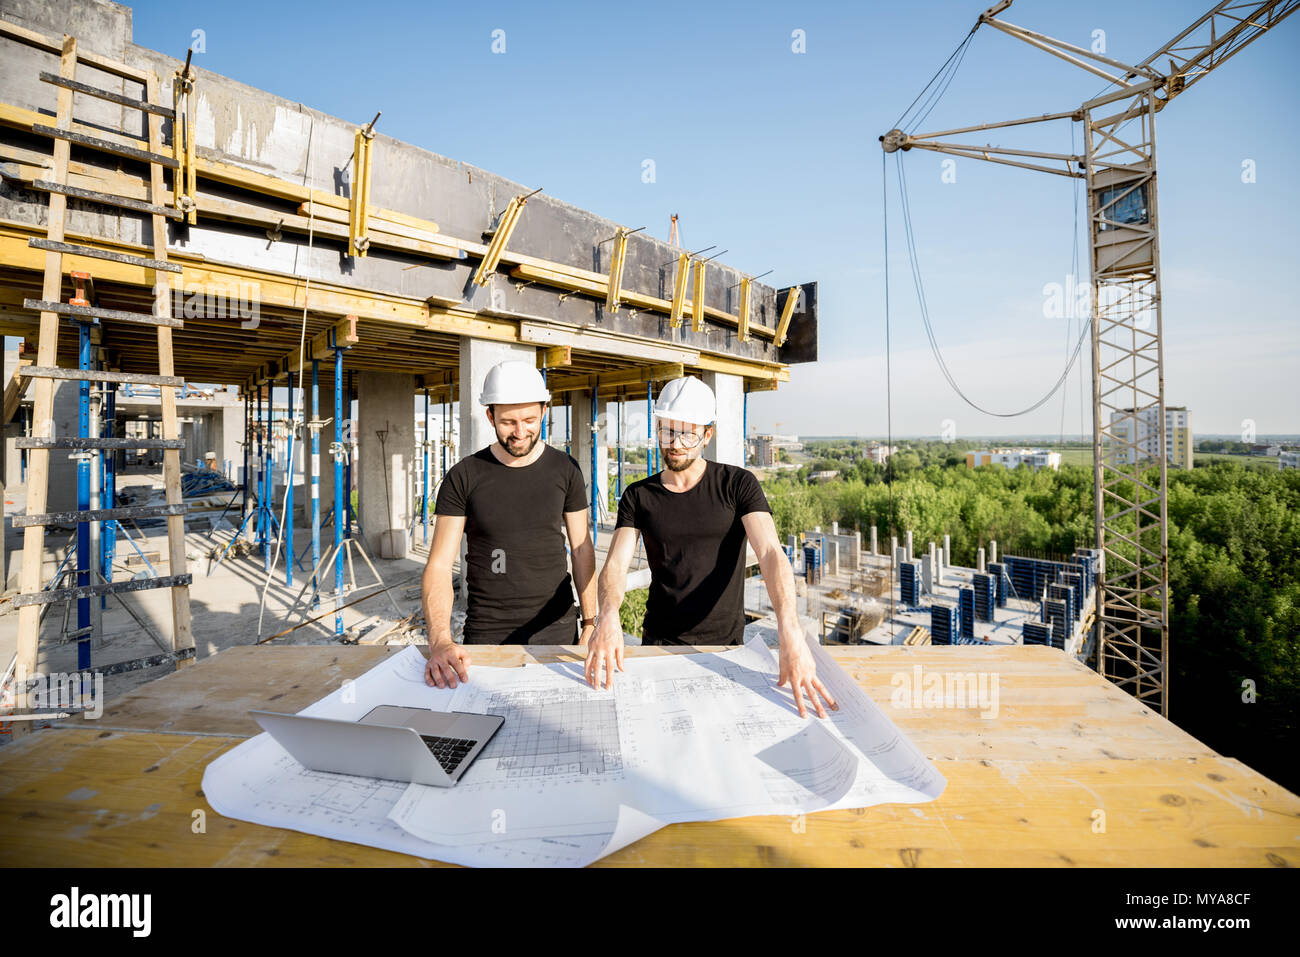 Workers with drawings at the construction site - Stock Image